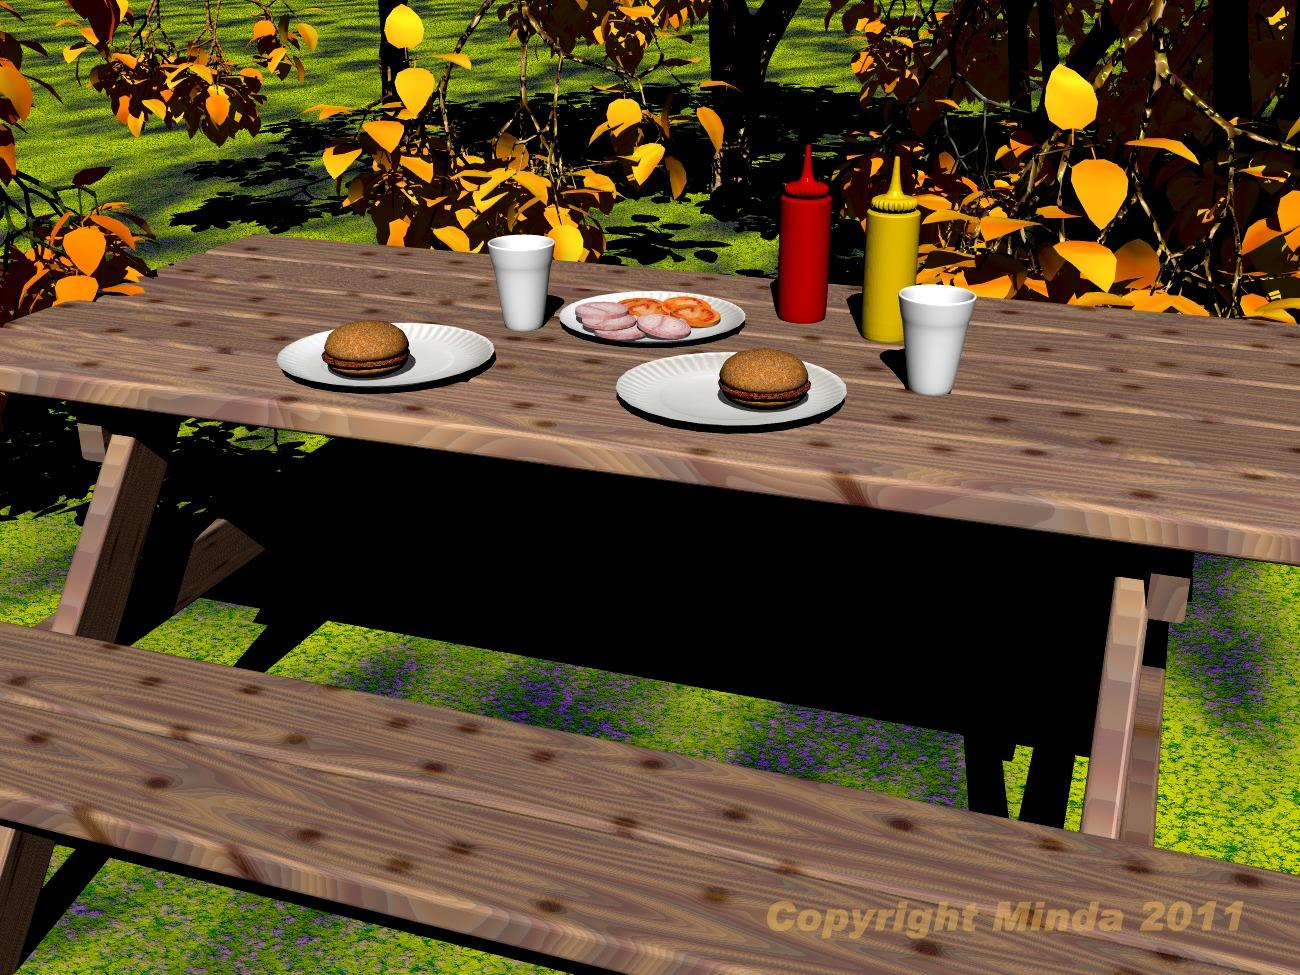 Picnic Table..:):)